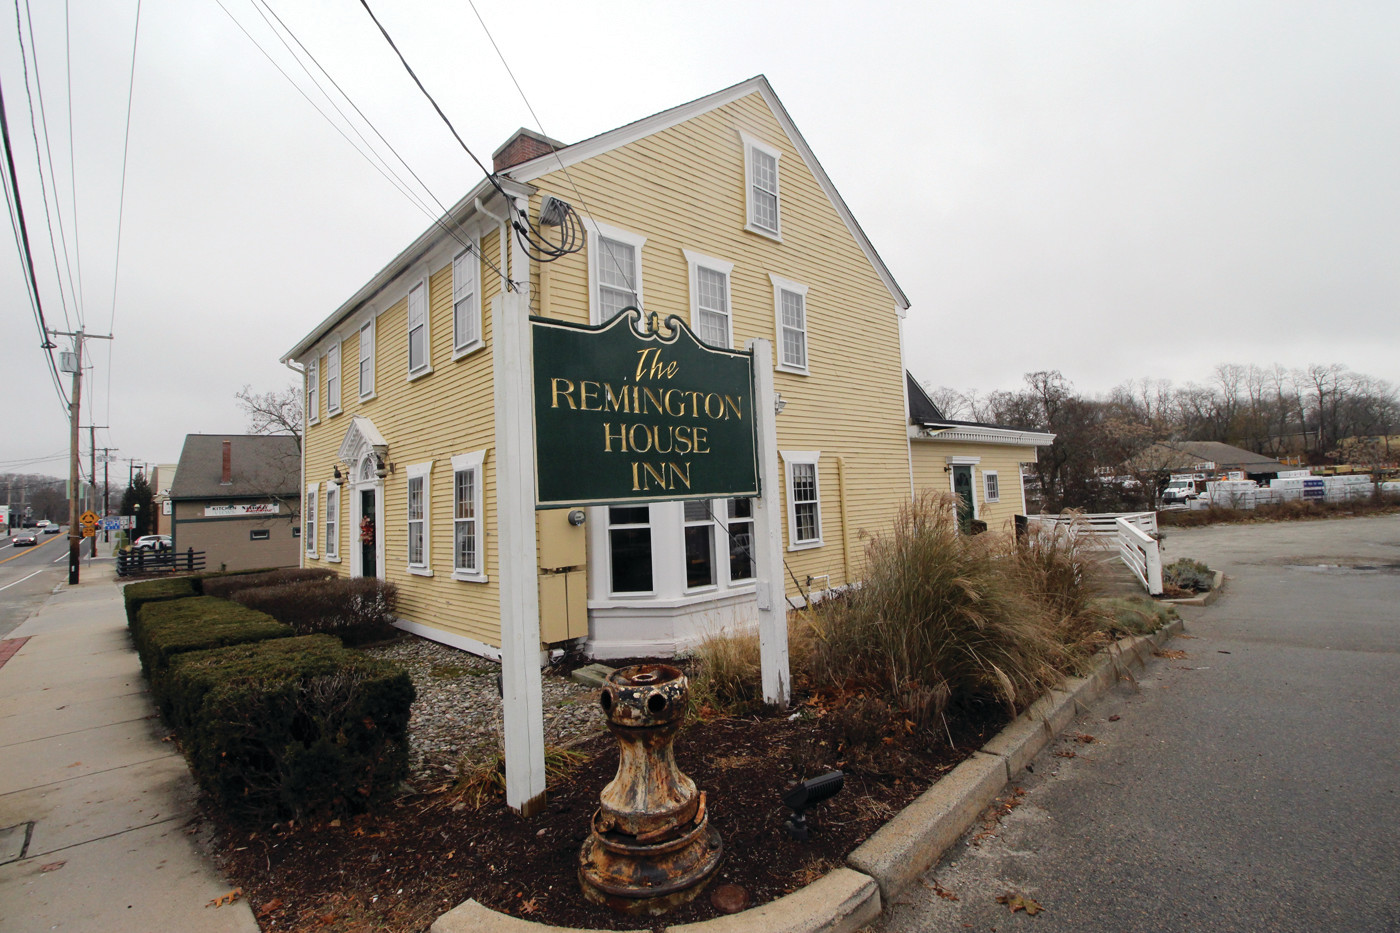 CLOSING SOON: The Remington House Inn announcedit will be closing on Friday, Nov. 30, much to the chagrin of its loyal patrons.